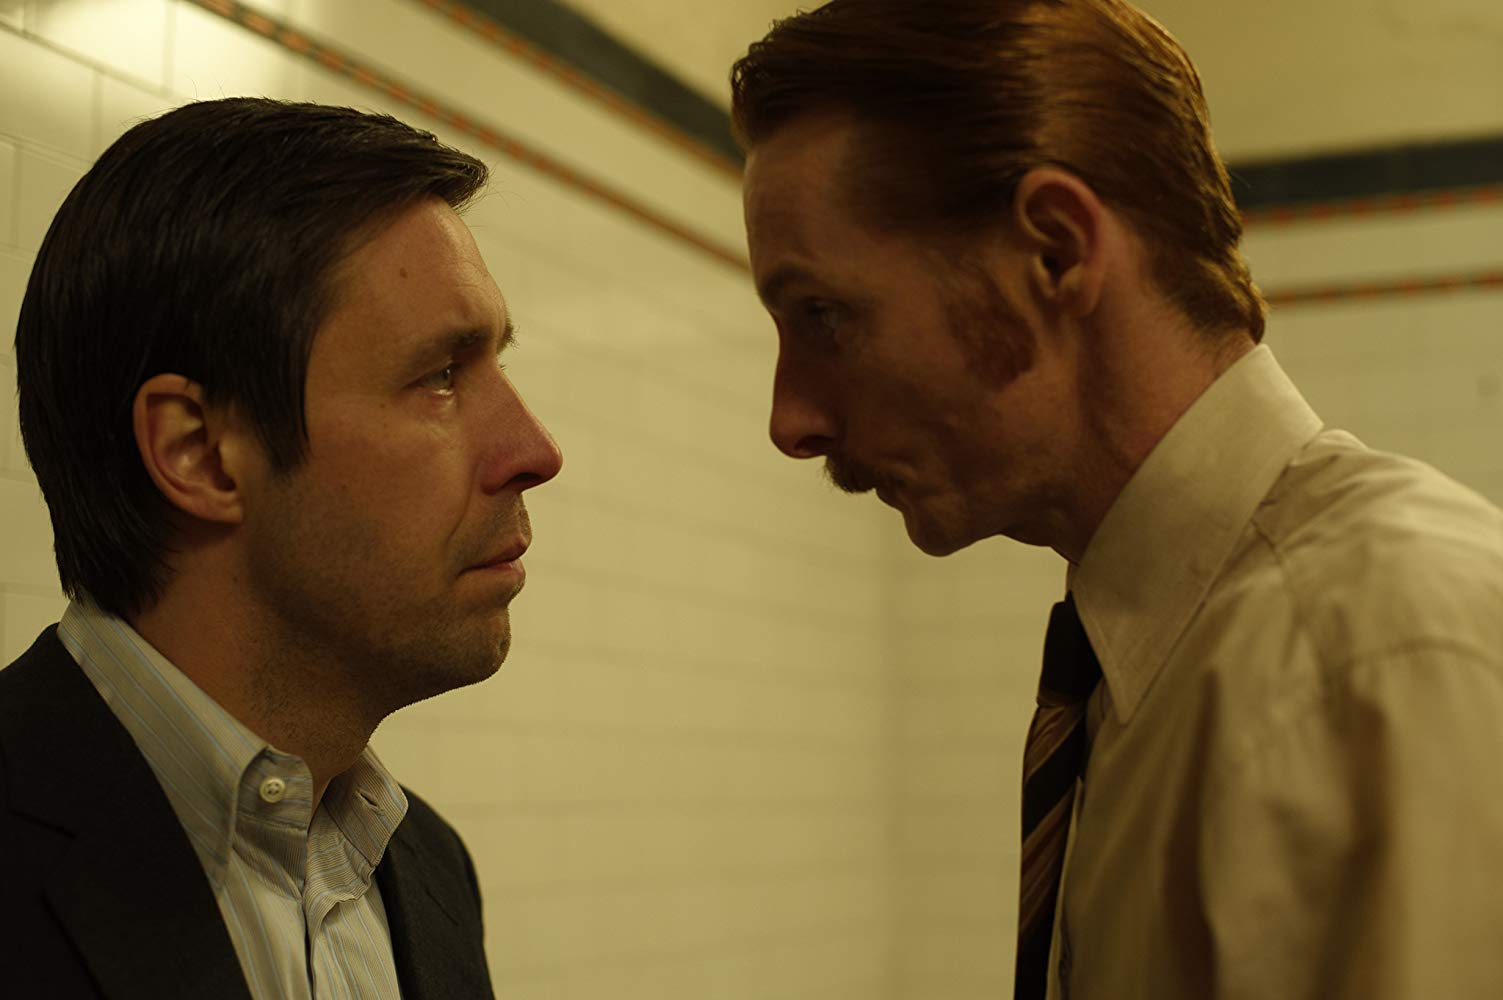 (l to r) Peter Hunter (Paddy Considine) comes up against detective Bob Craven (Sean Harris) as he conducts an inquiry into corruption in the Yorkshire Police Department in Red Riding: In the Year of Our Lord 1980 (2009)